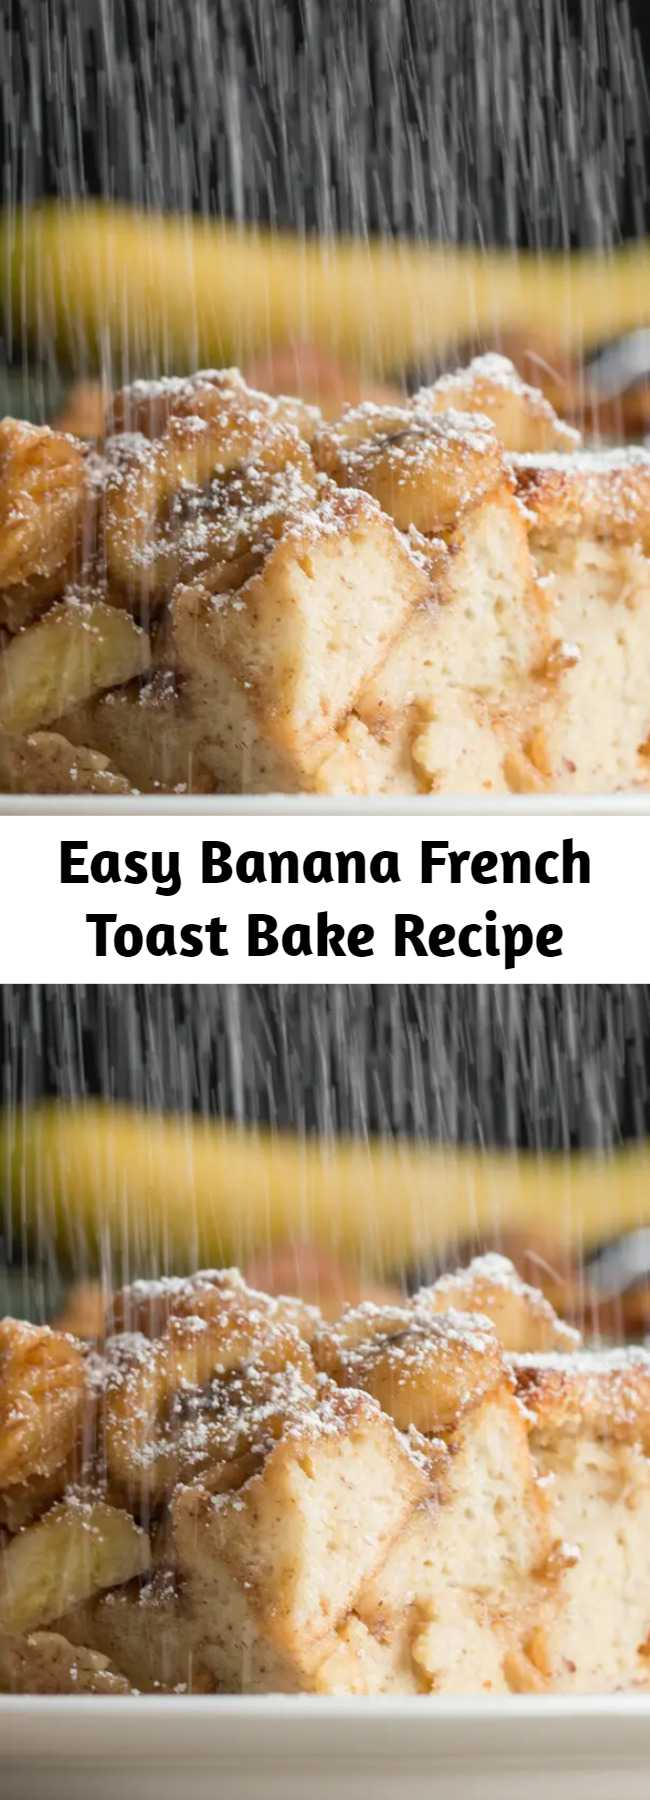 Easy Banana French Toast Bake Recipe - Save time without the hassle of dipping individual pieces and frying on the stove top. Any kind of sandwich bread will work, and you can add any fruit or cream cheese. I used bananas because it's what I had on hand.